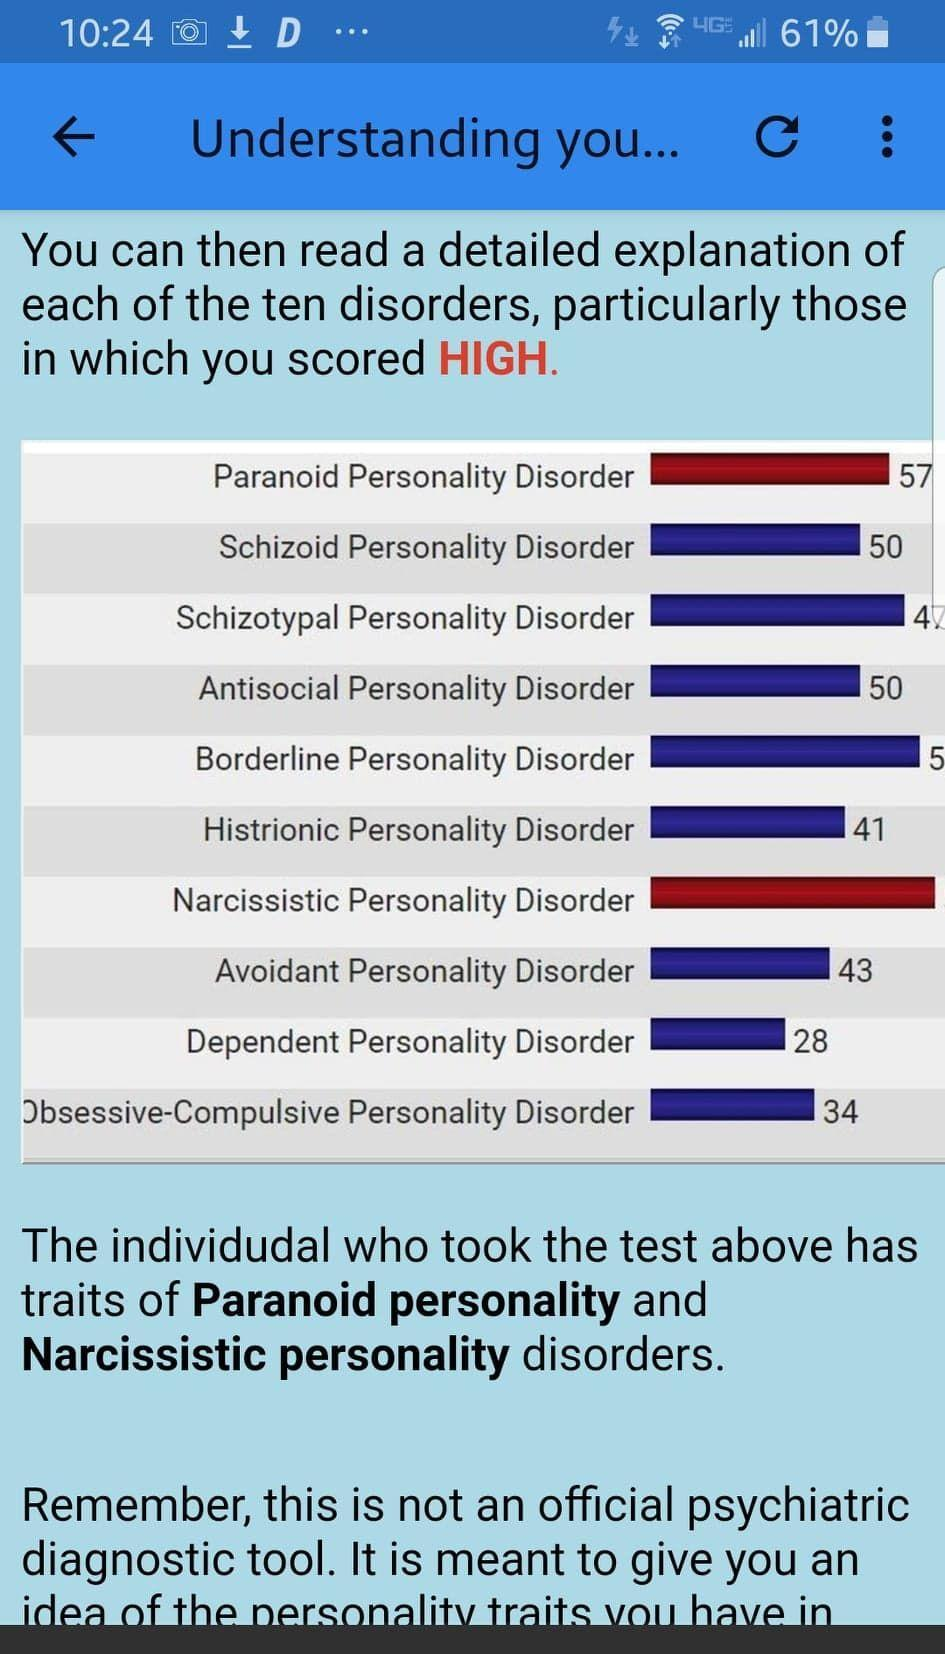 Disorder test compulsive personality obsessive NIMH »